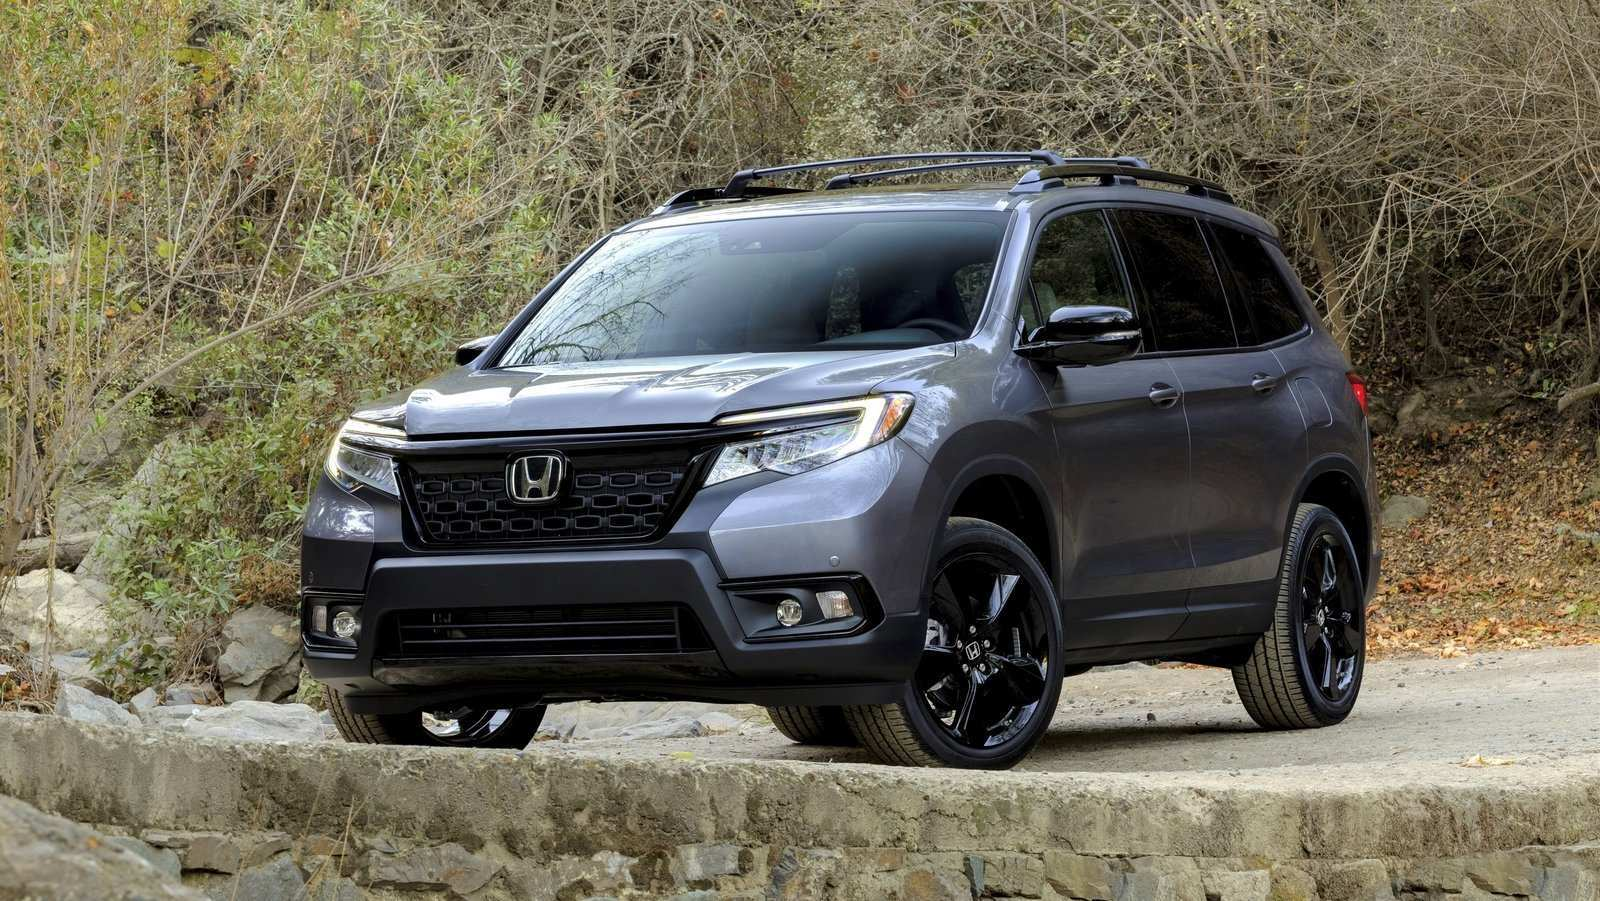 51 A 2020 Honda Pilot Review